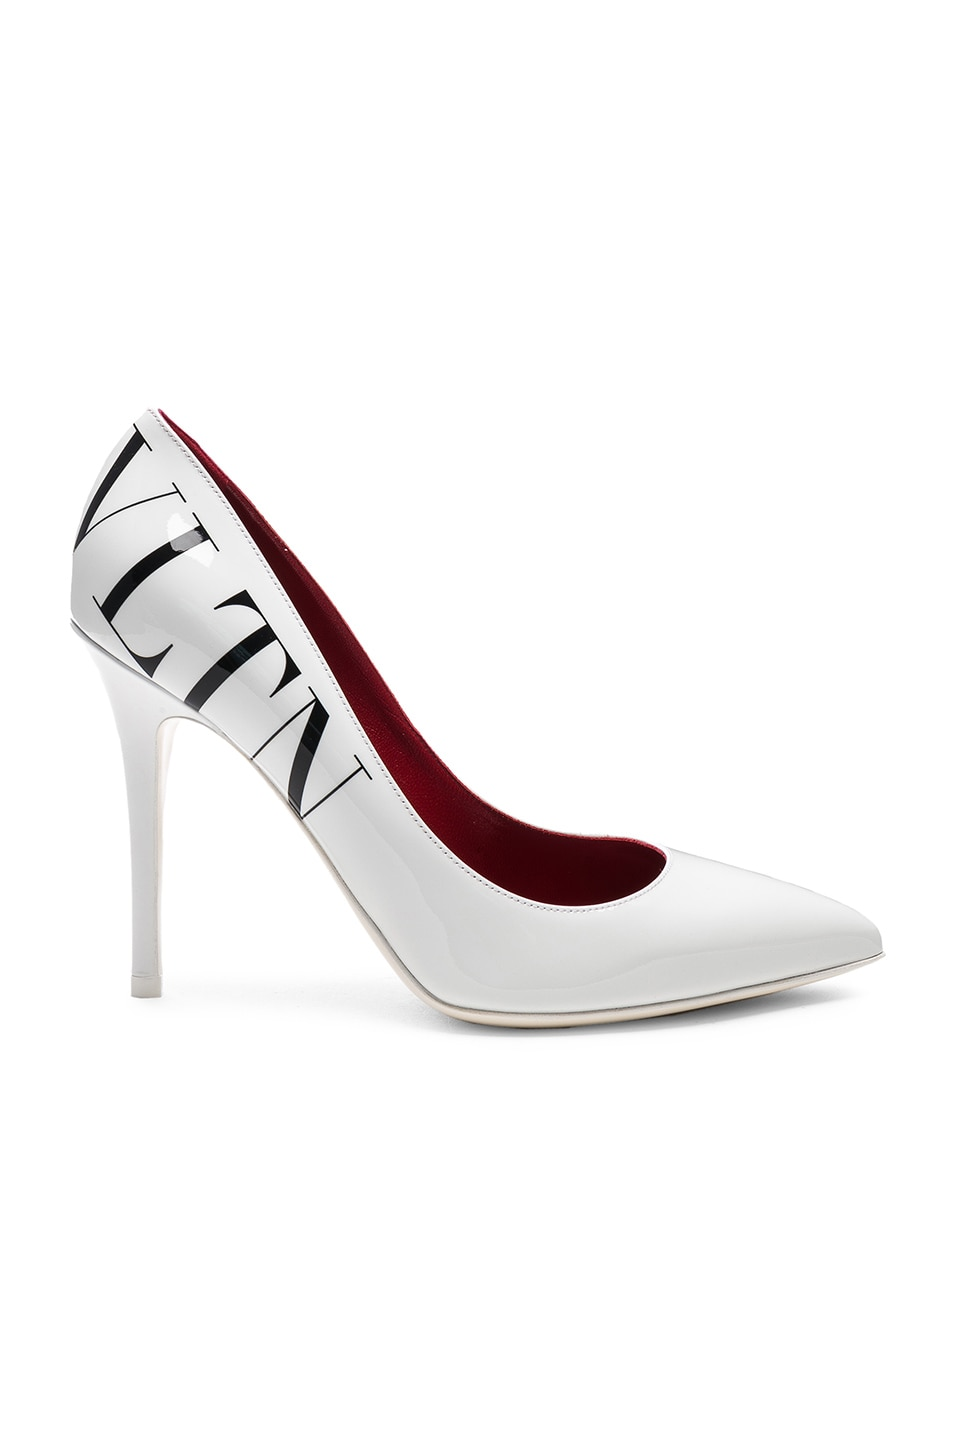 Image 1 of Valentino VLTN Print Patent Leather Pumps in Optic White & Black